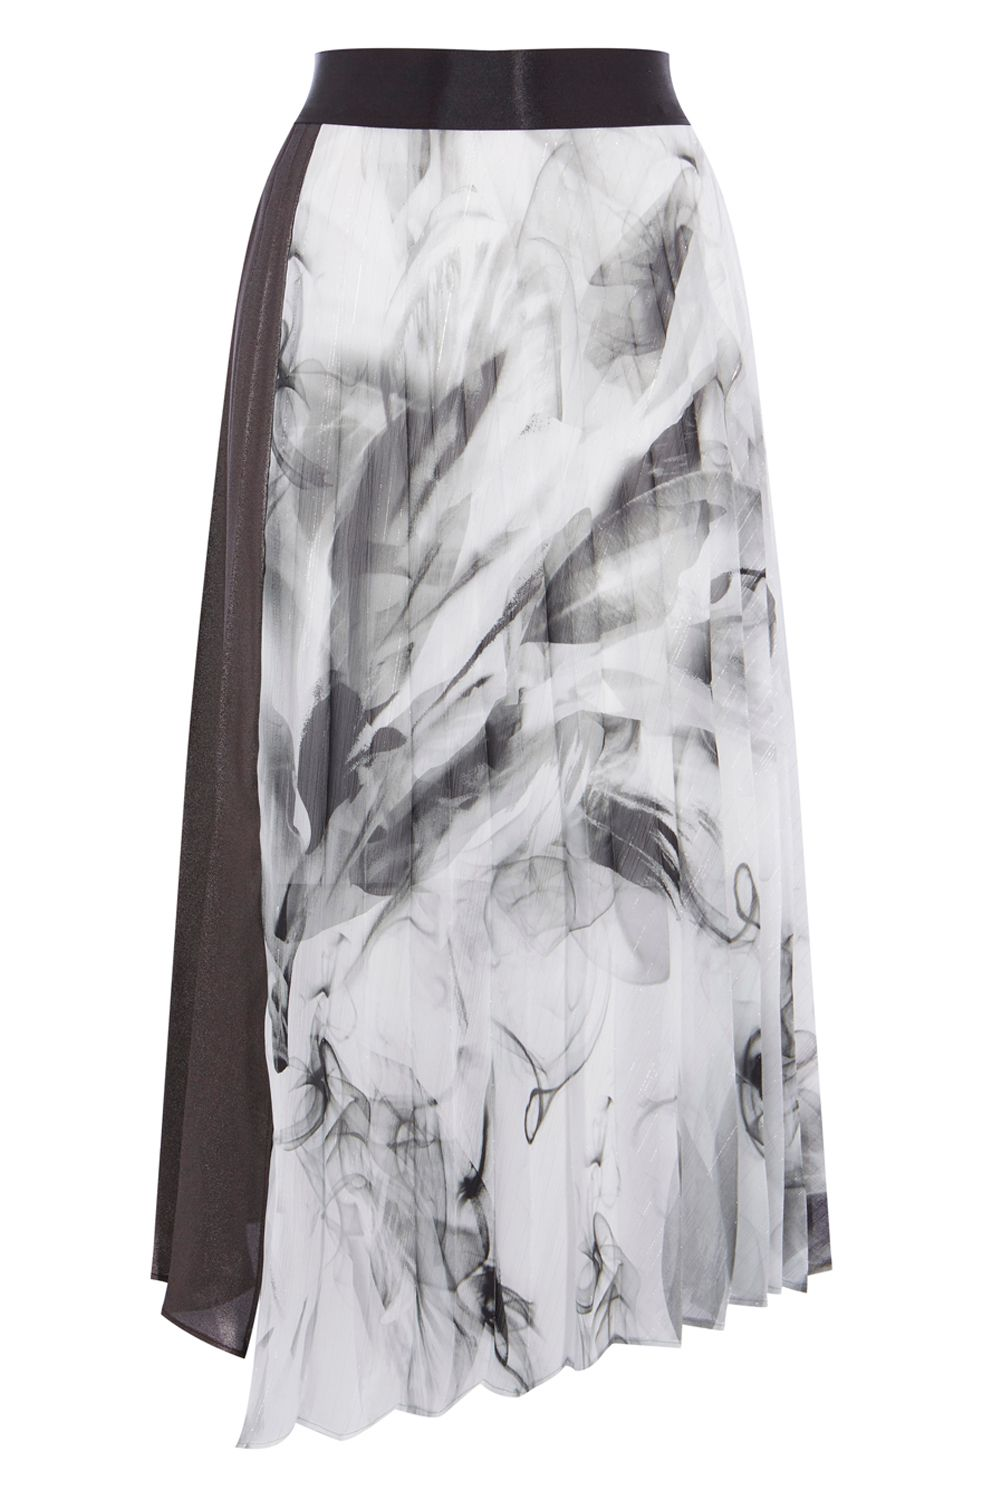 Coast Samira Printed Metallic Skirt, Multi-Coloured